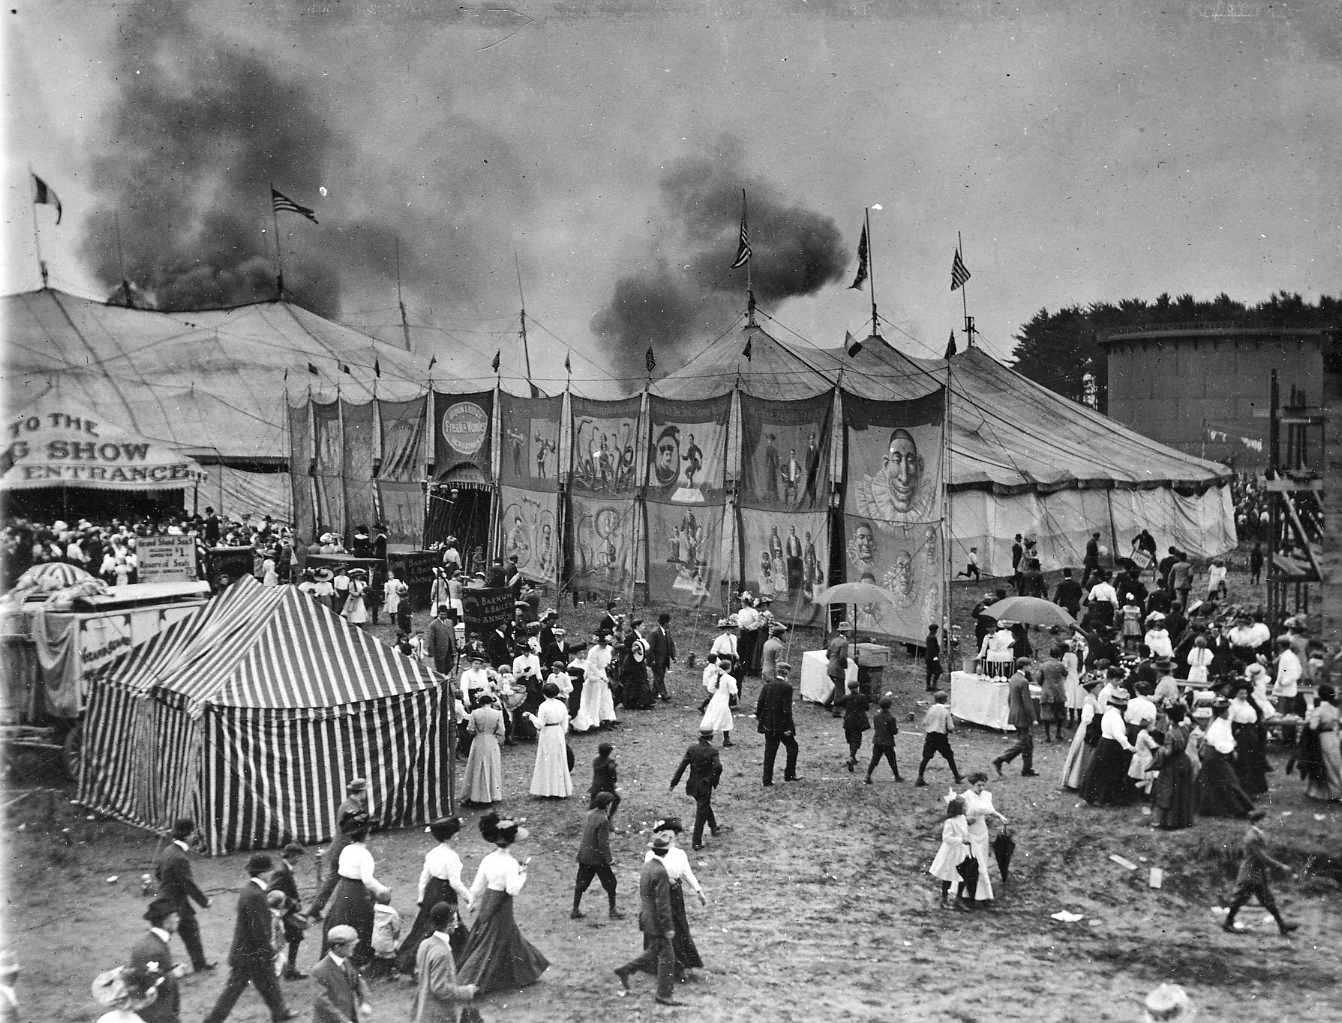 grems doolittle library collections blog the day the circus came